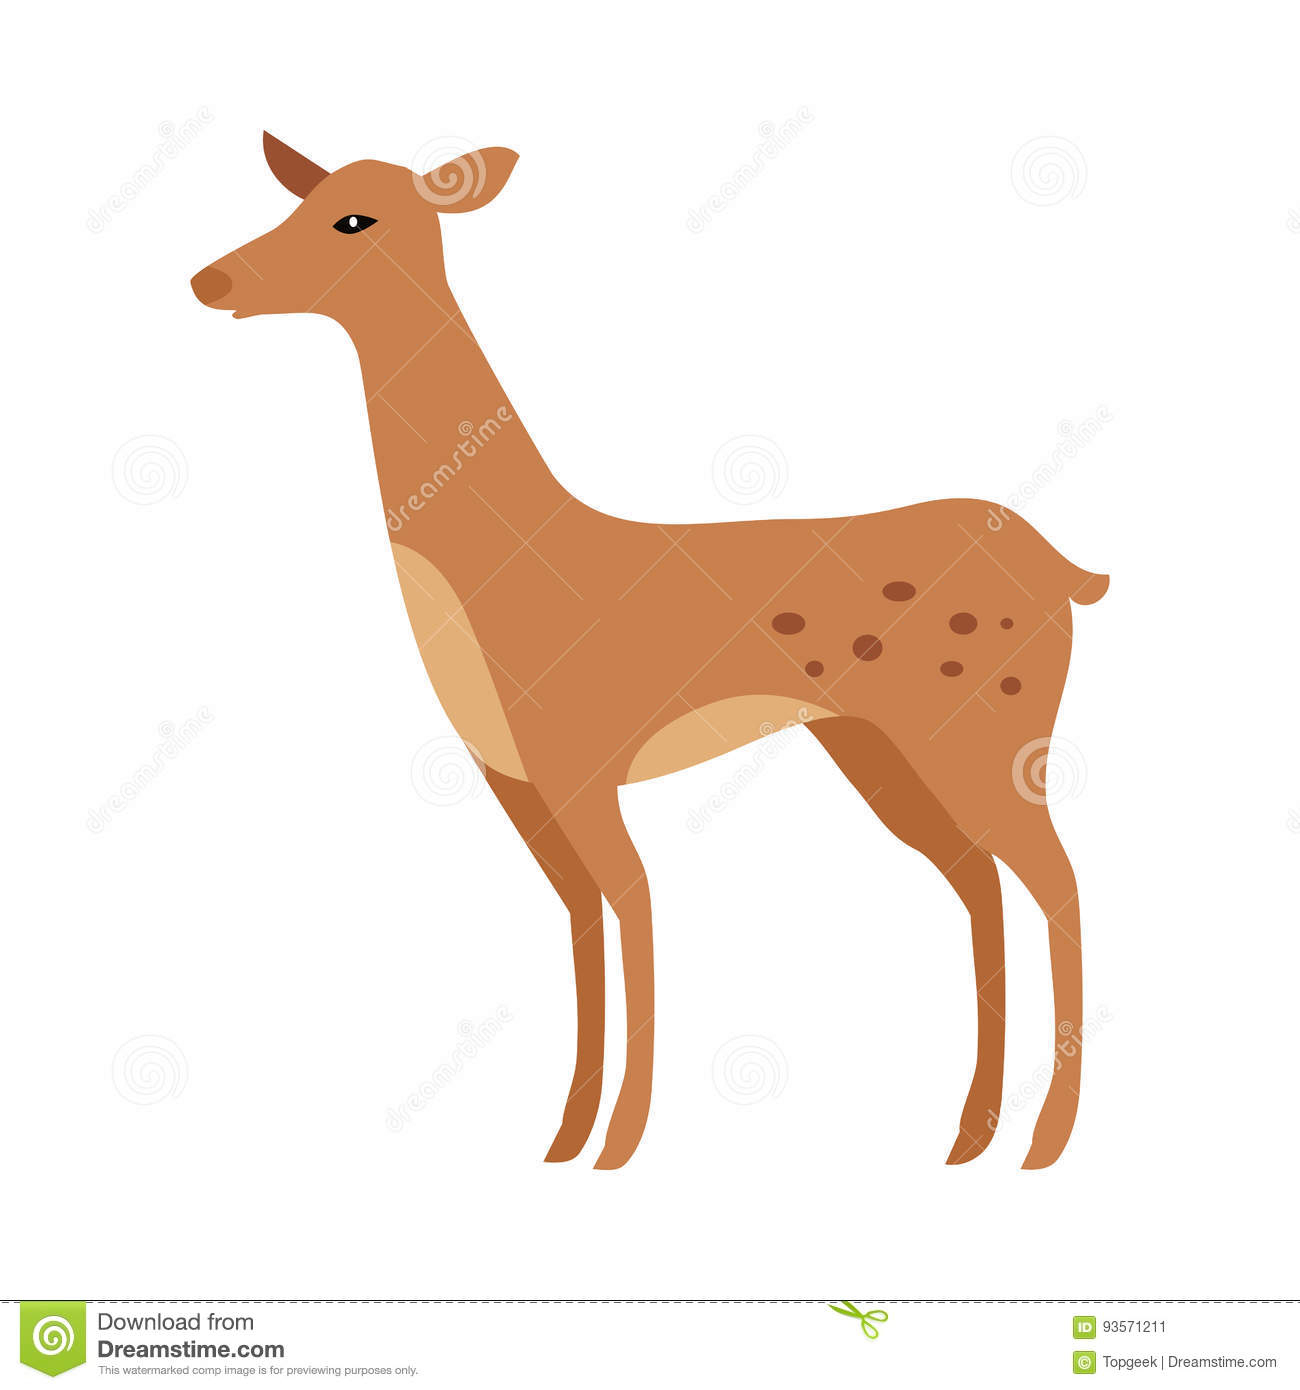 Faon D'isolement Junior Verdant Young Spotted Deer tout Faon Dessin